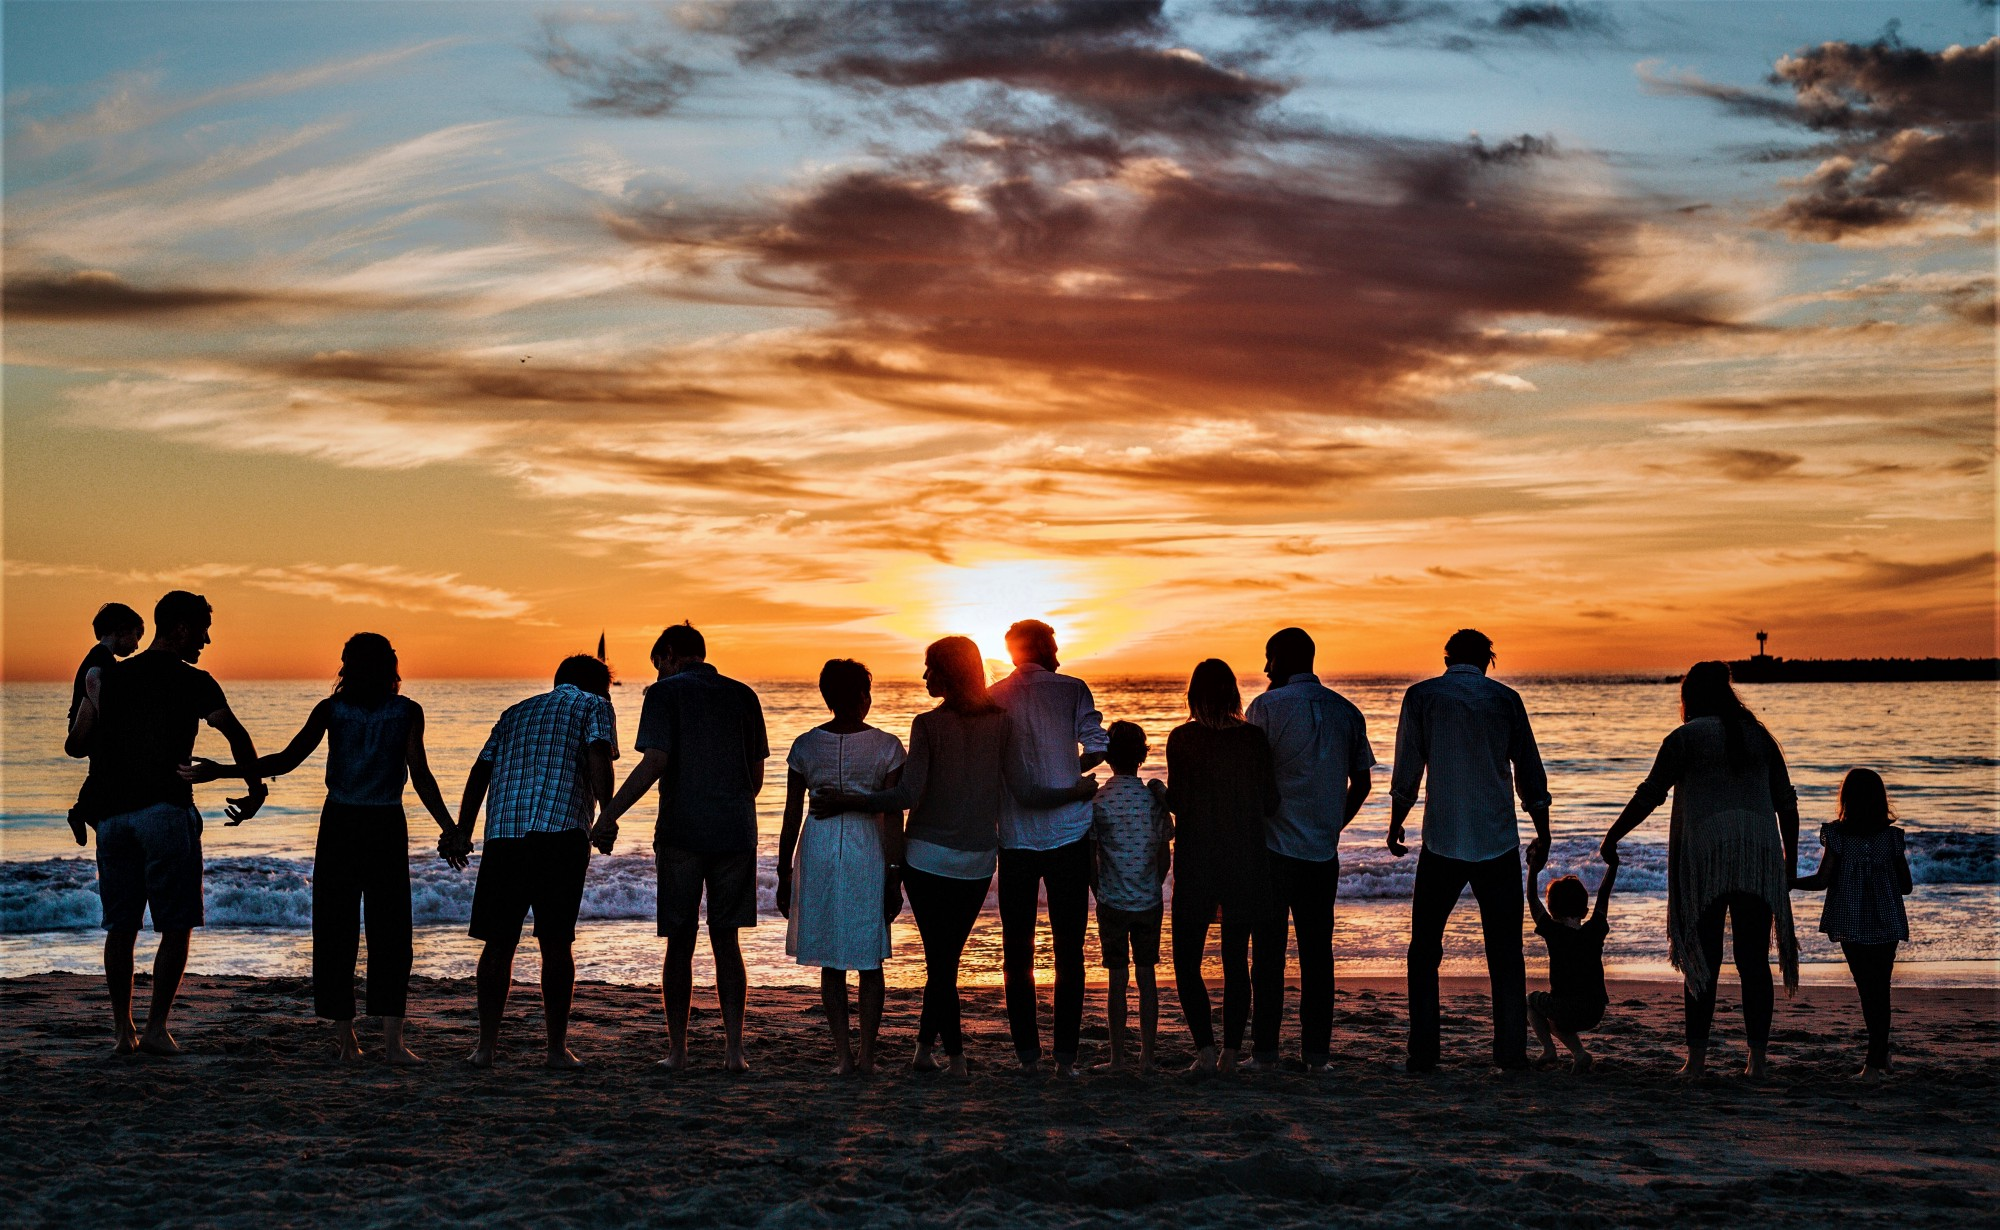 Silhouette of group of people on the beach looking out toward the ocean and colorful sunset